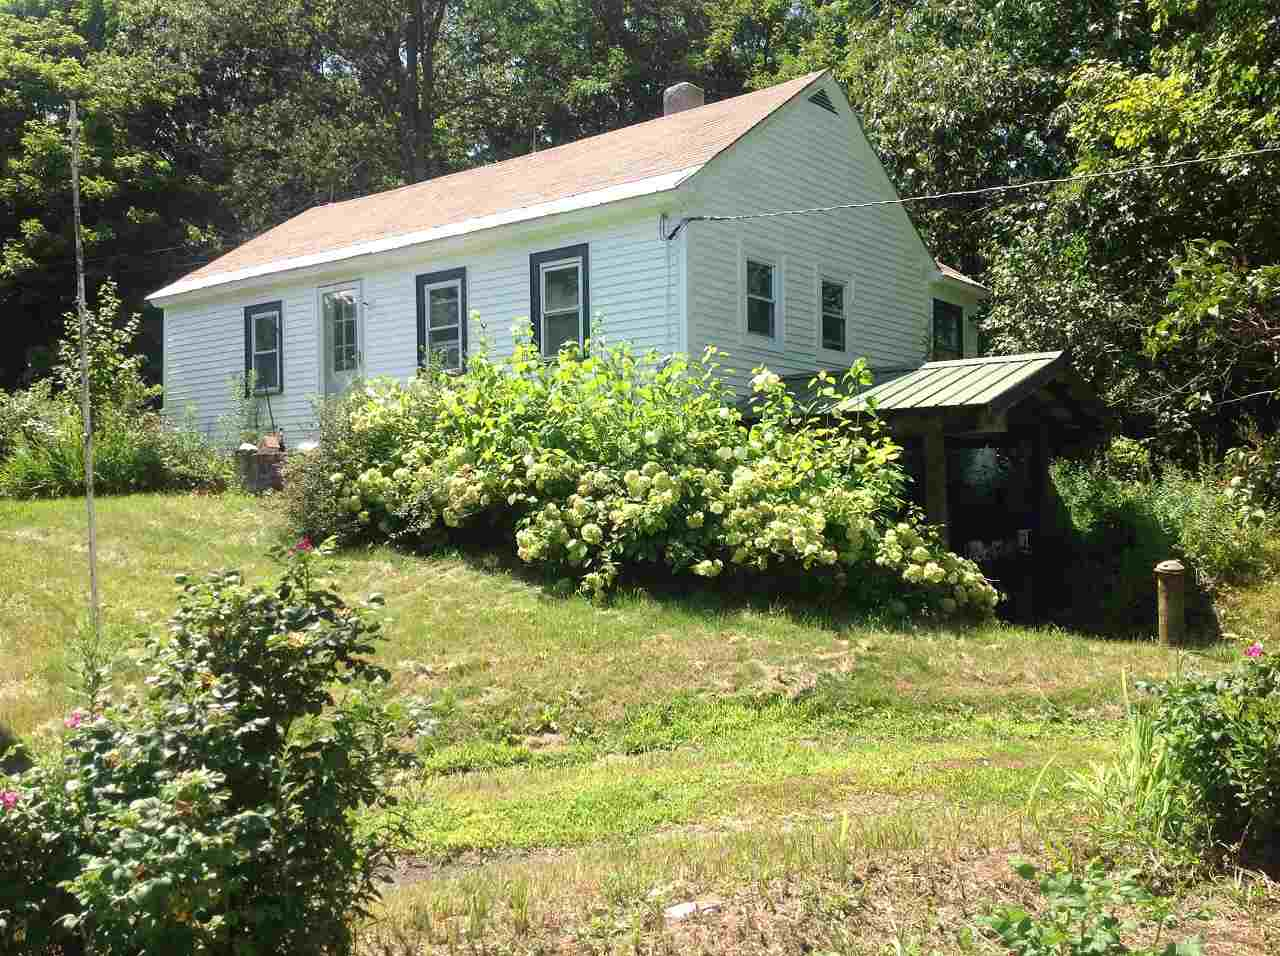 MLS 4754184: 305 Chesterfield Road, Hinsdale NH